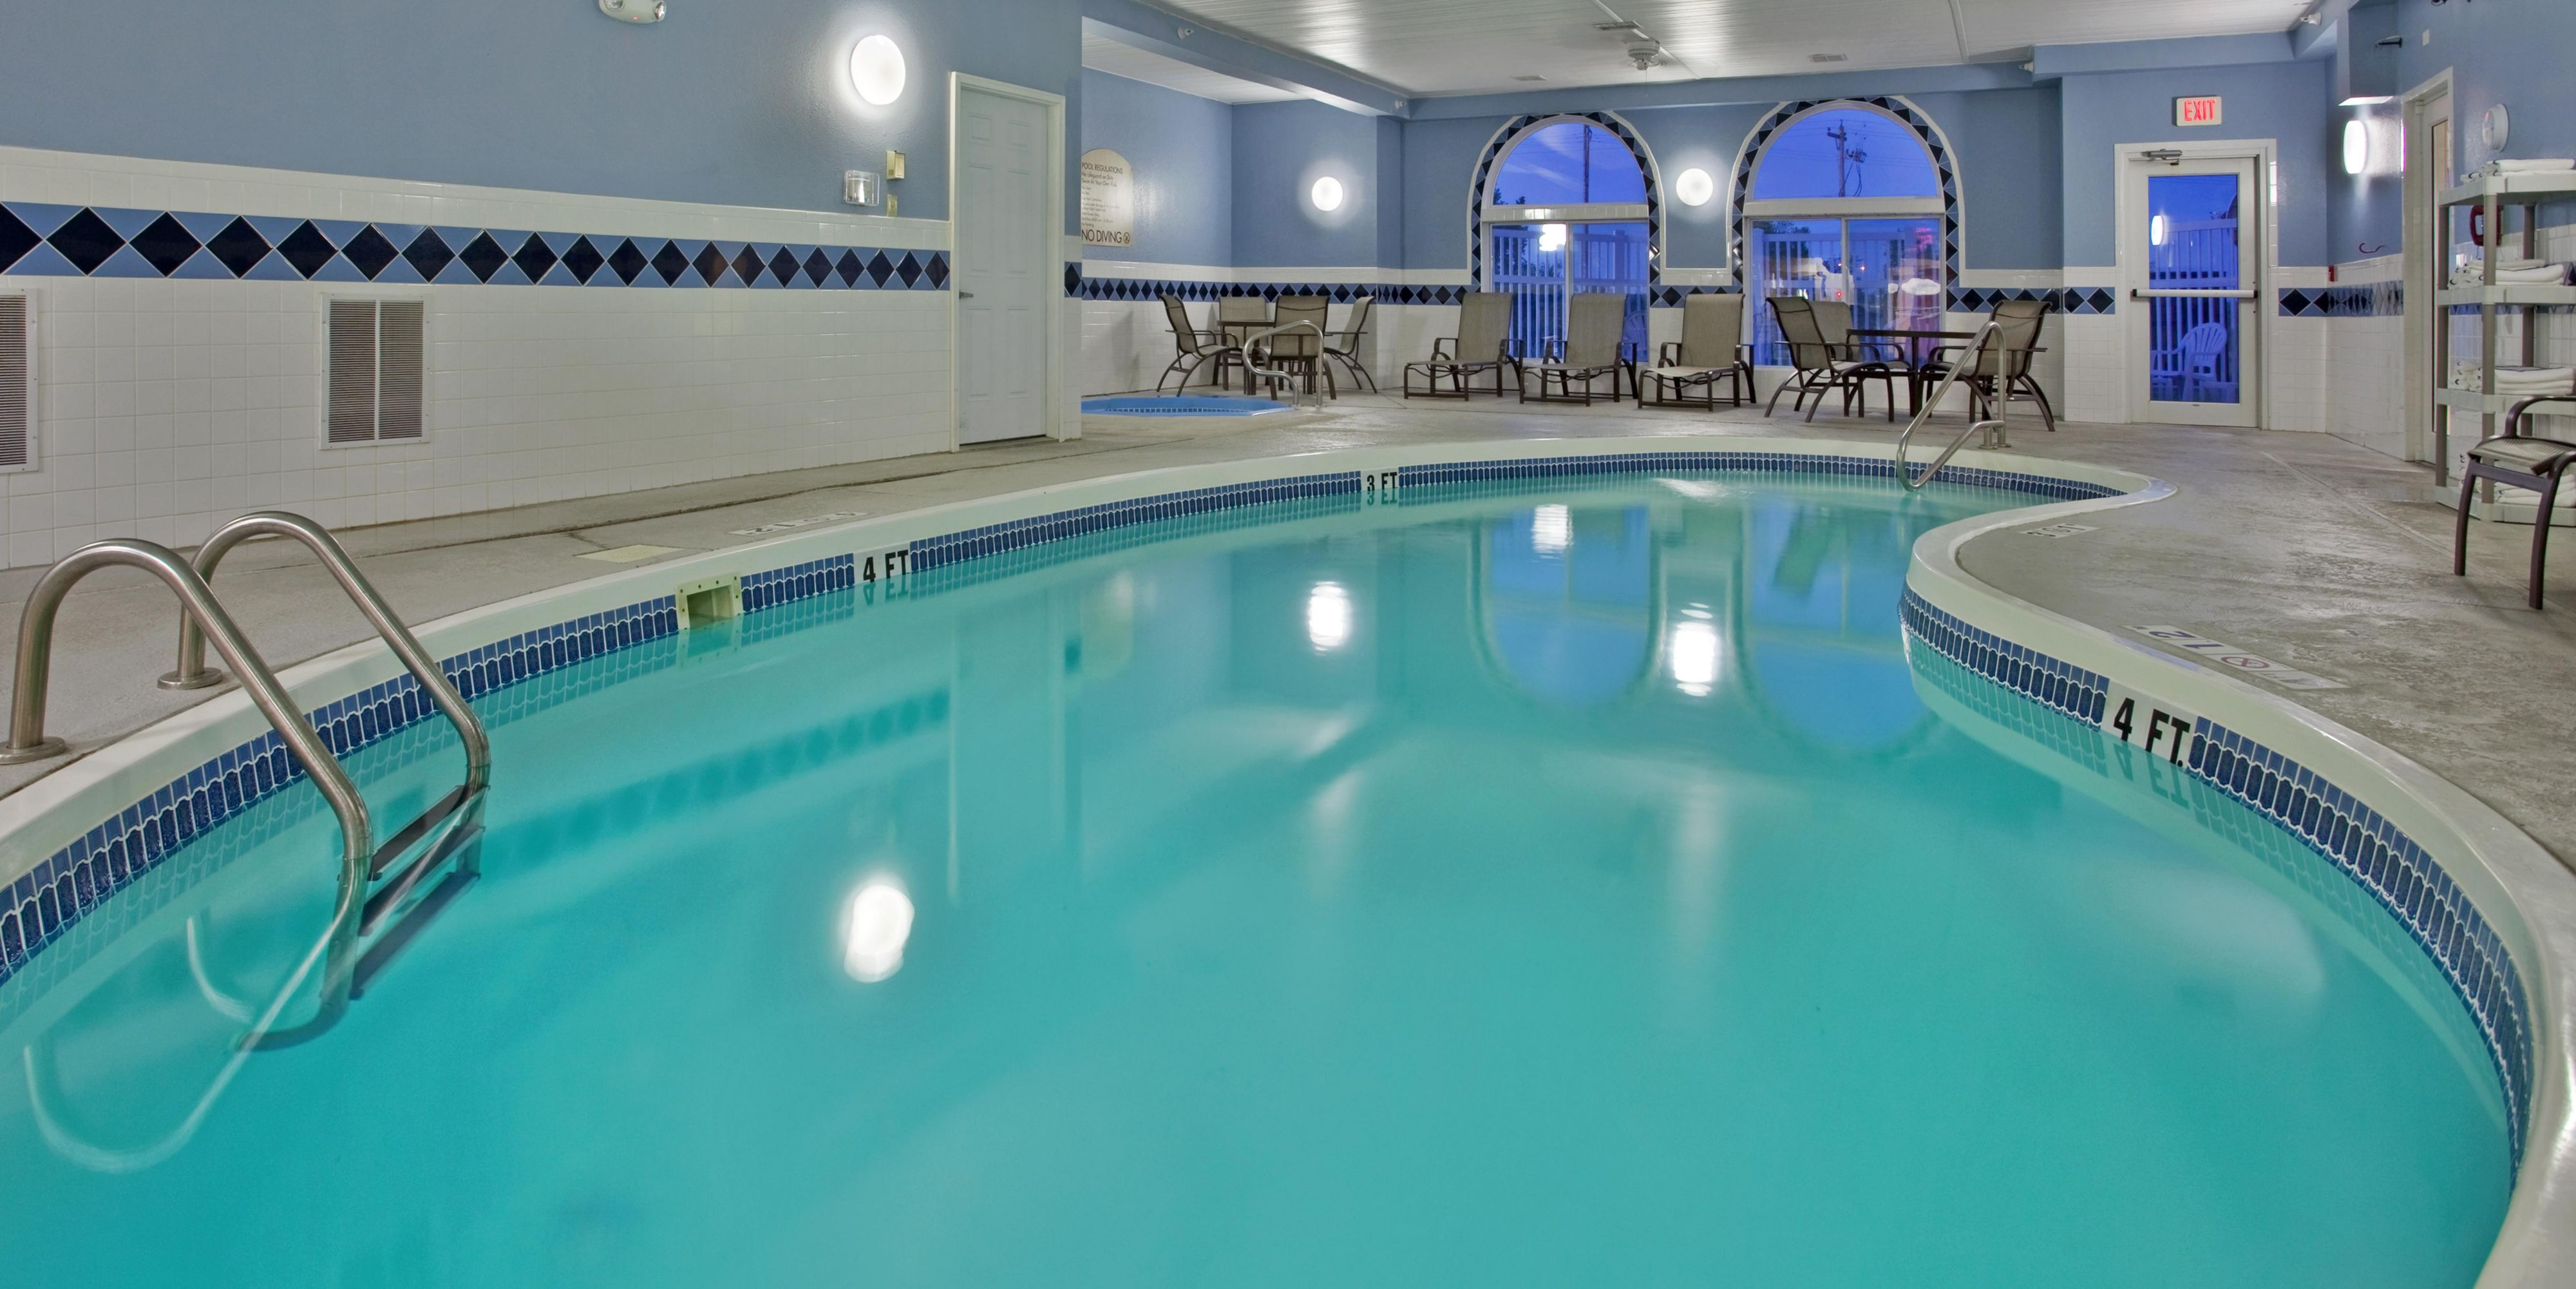 24 hour fitness maryville mo sport fatare for Garden state pool scene quote